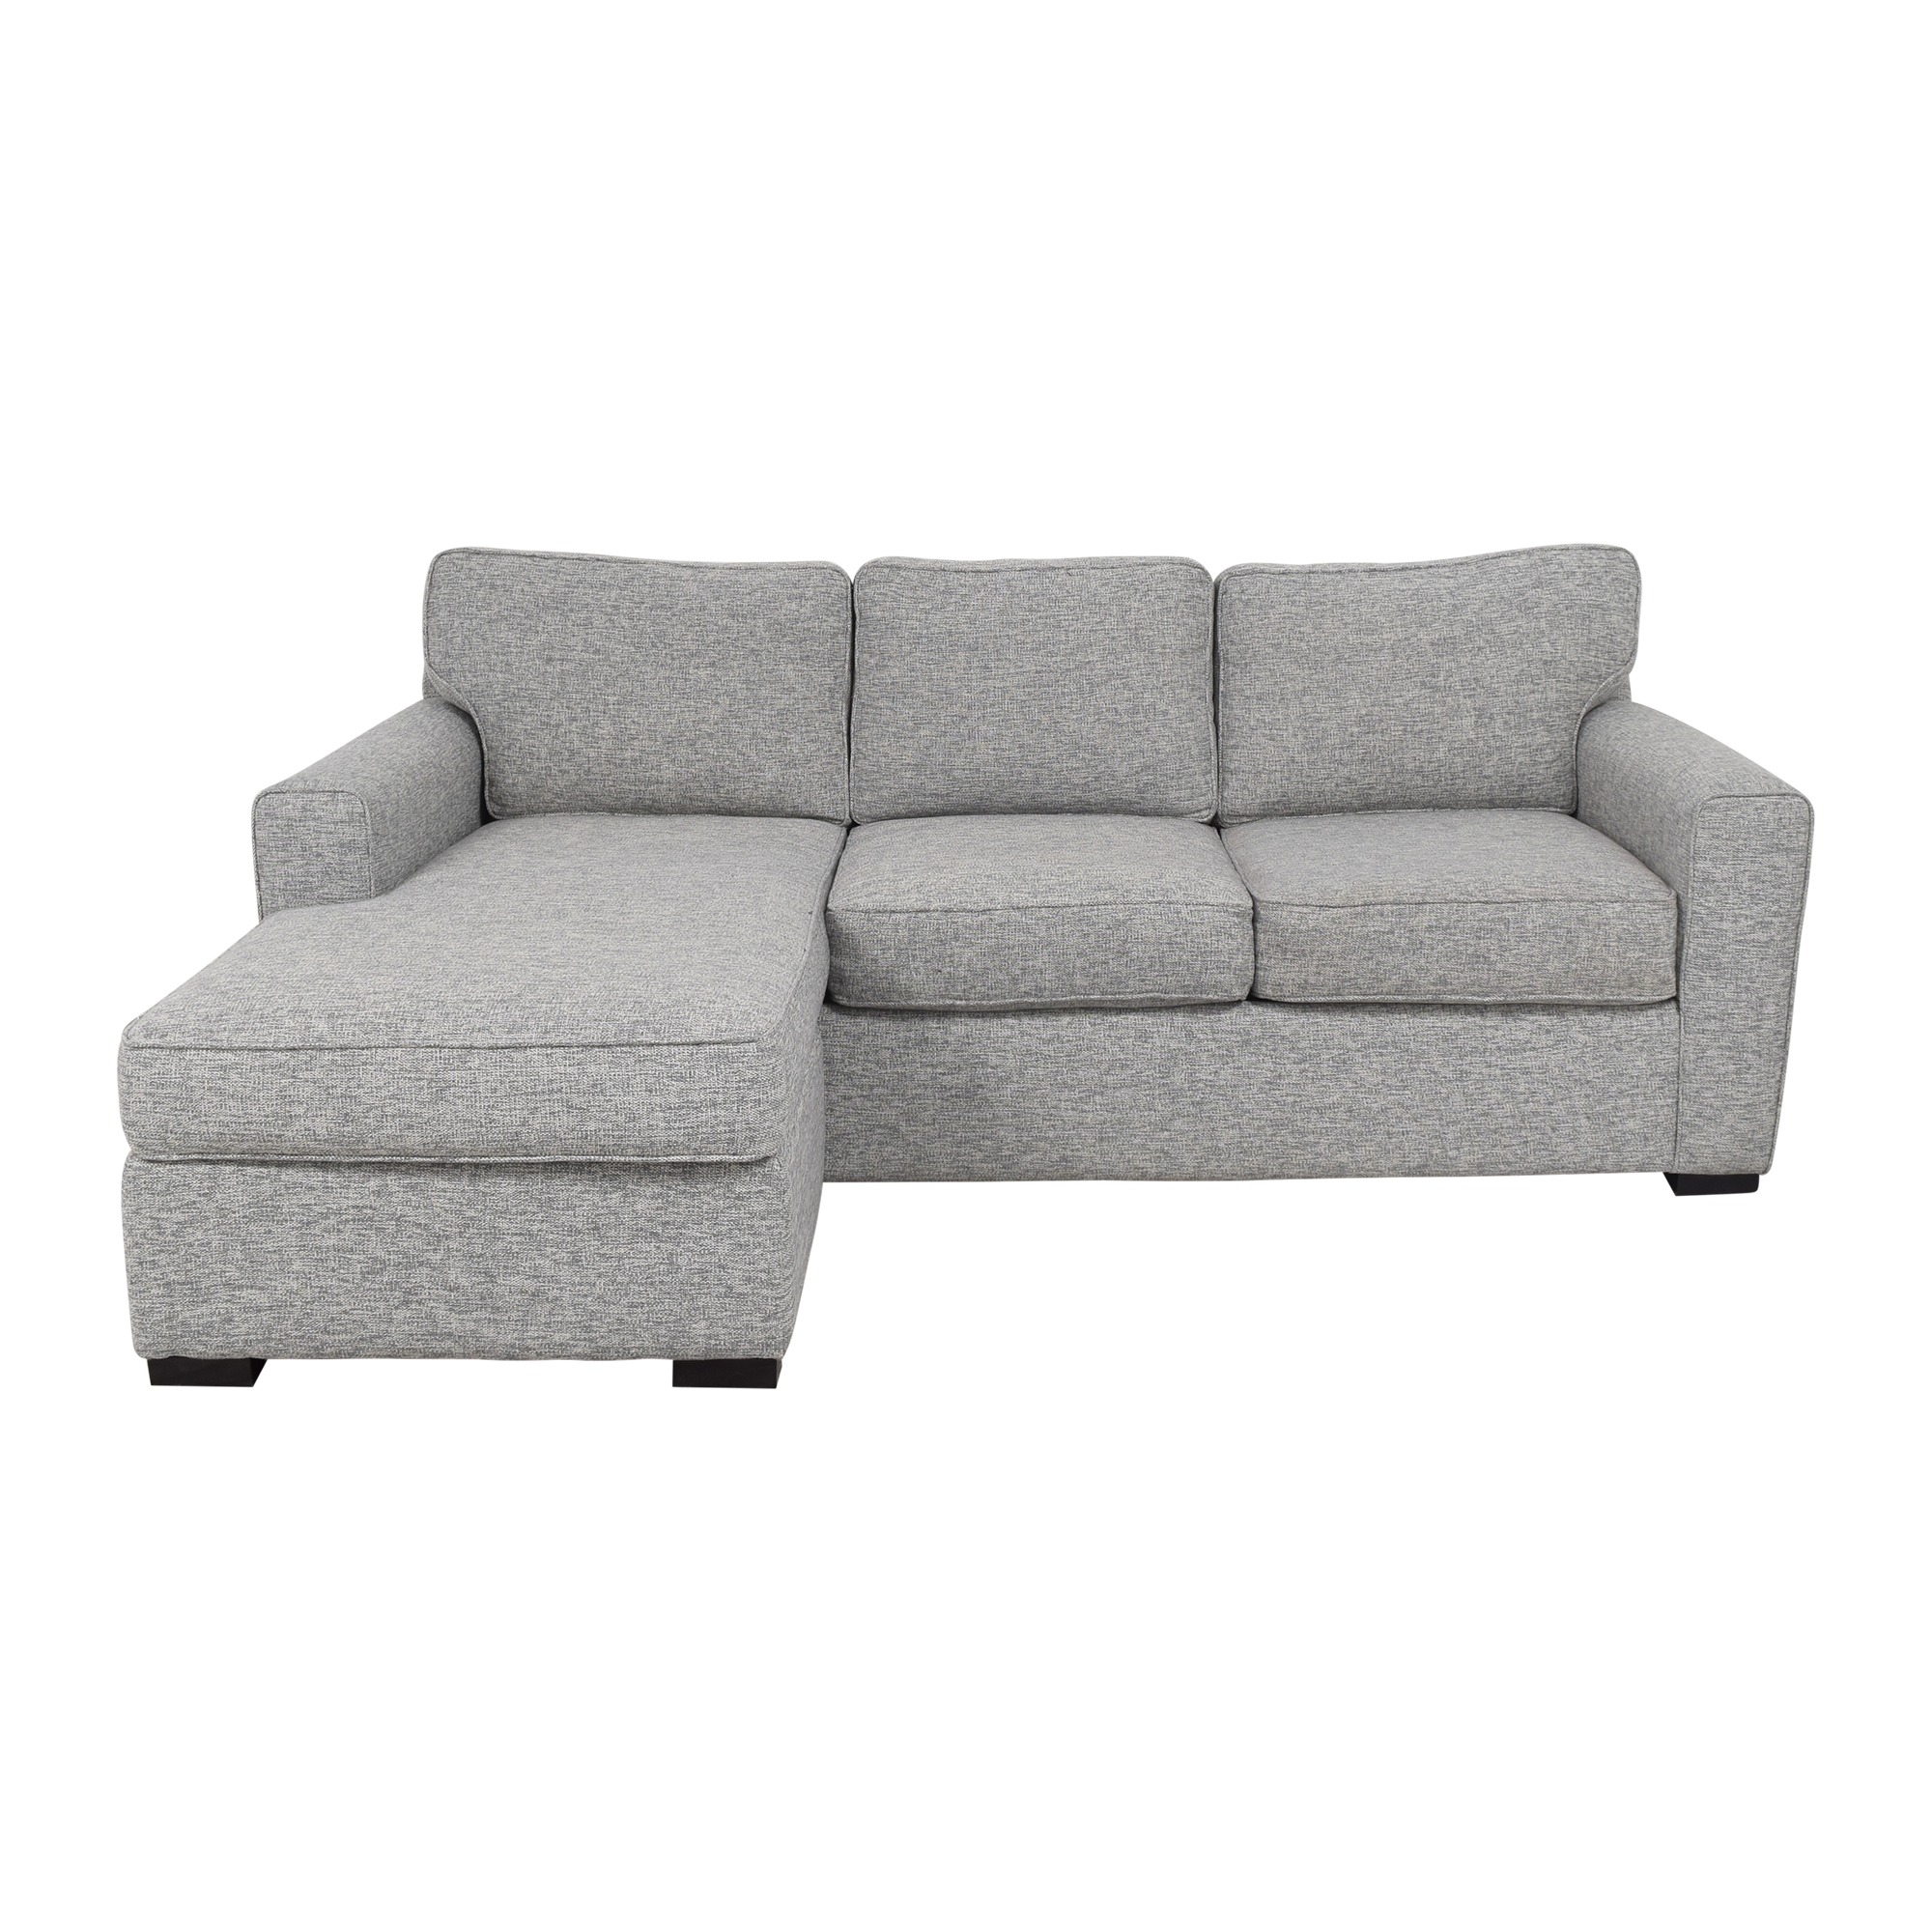 Macy's Macy's Callington Reversible Chaise Sectional Sofa used